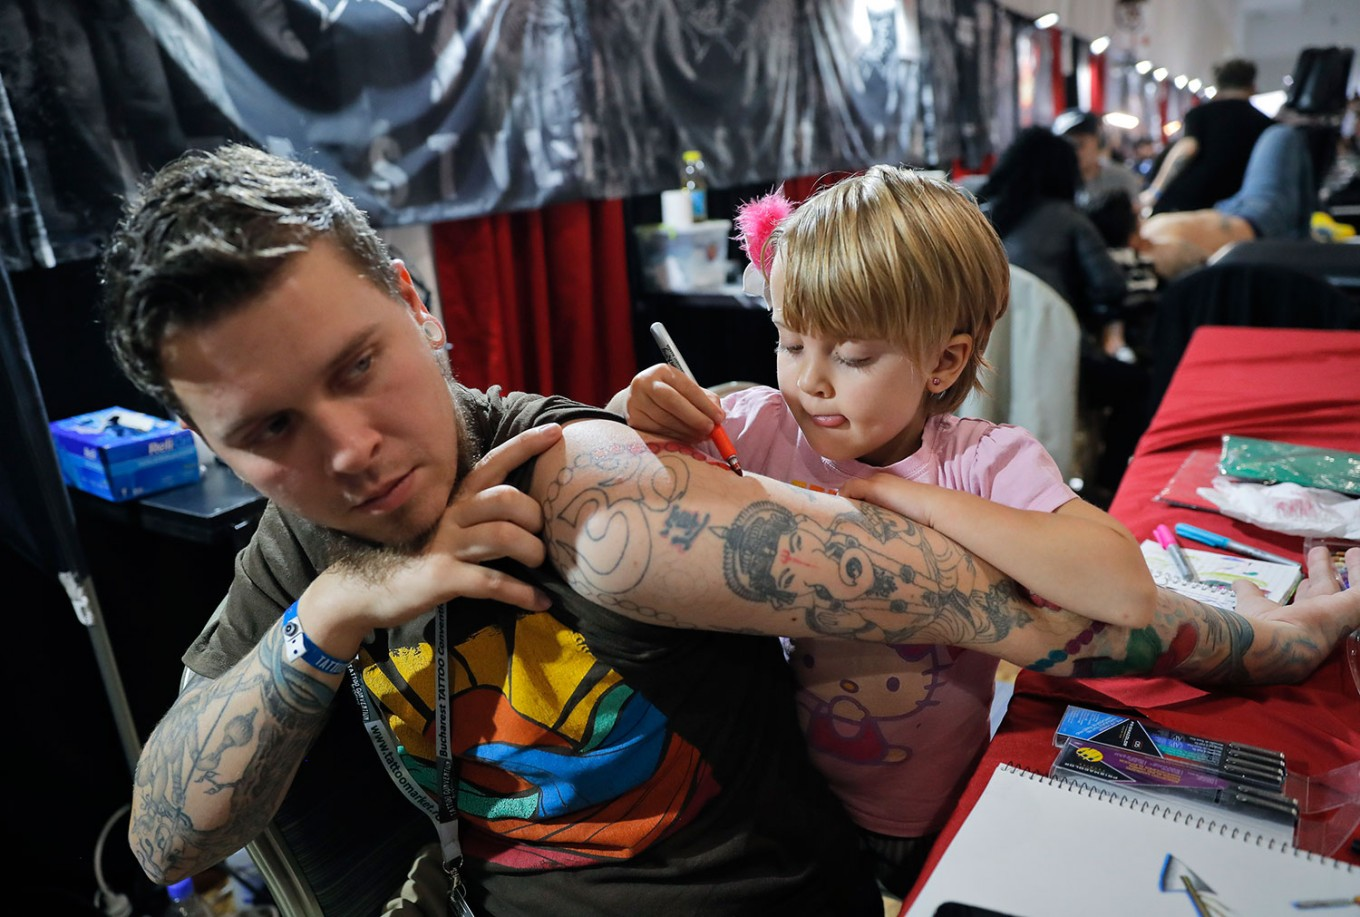 In this picture taken on Sunday, Oct. 16, 2016, Ave, 4 year-old from  the United States, paints on her father's arm during the International Tattoo Convention Bucharest 2016 in Bucharest, Romania. More than 100 tattoo and piercing artists brought their skills and art to a three-day convention in the Romanian capital. AP Photo/Vadim Ghirda